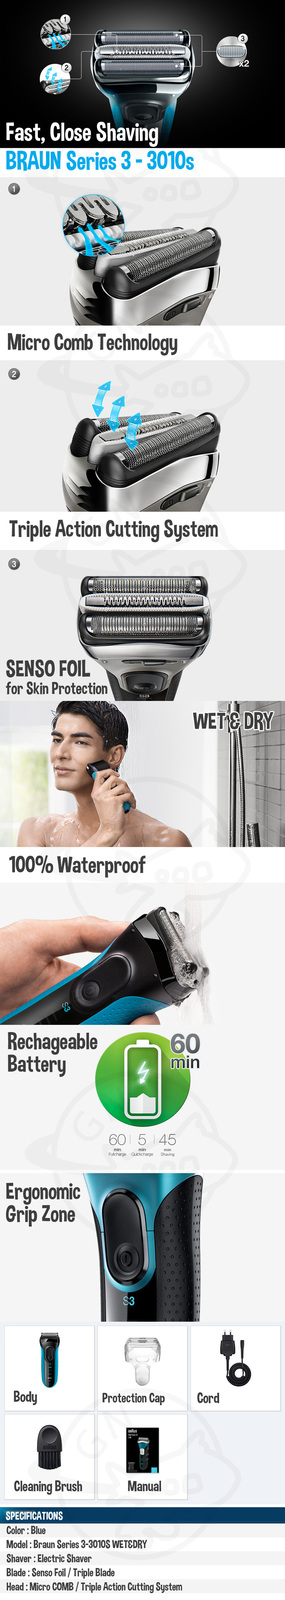 BRAUN BRAUN Series 3 - 3010s WetDry Electric Shaver Blue / Micro COMB / SENSO Fo